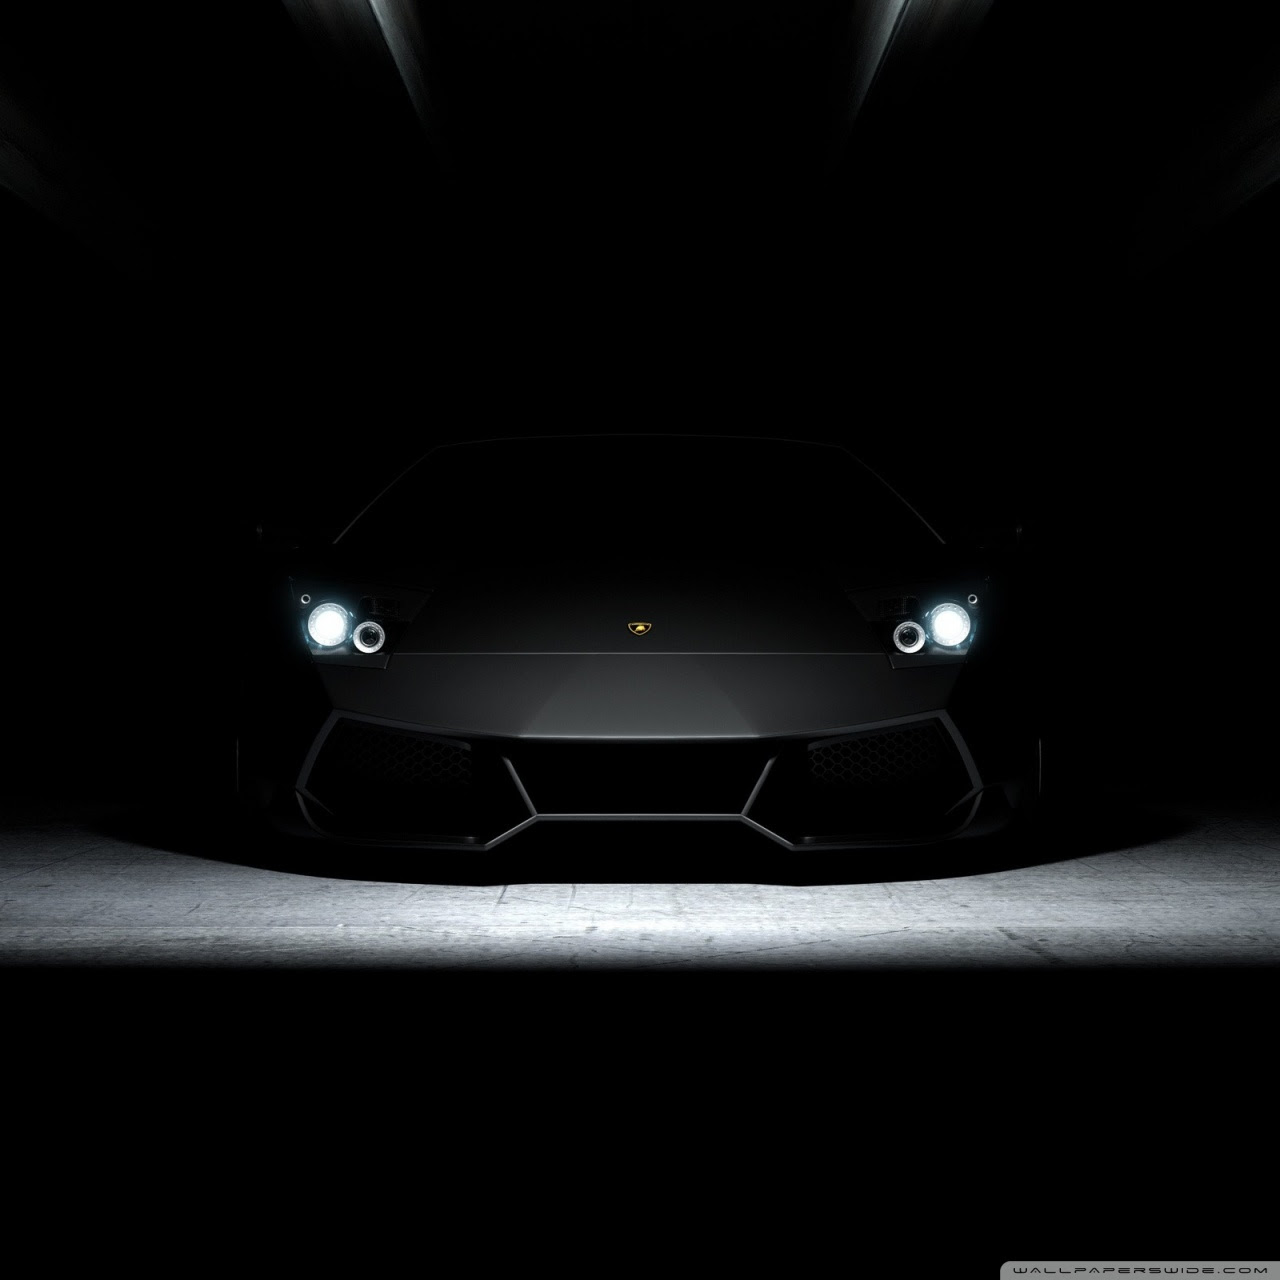 Black Car Wallpaper Hd For Mobile Automotive Wallpapers